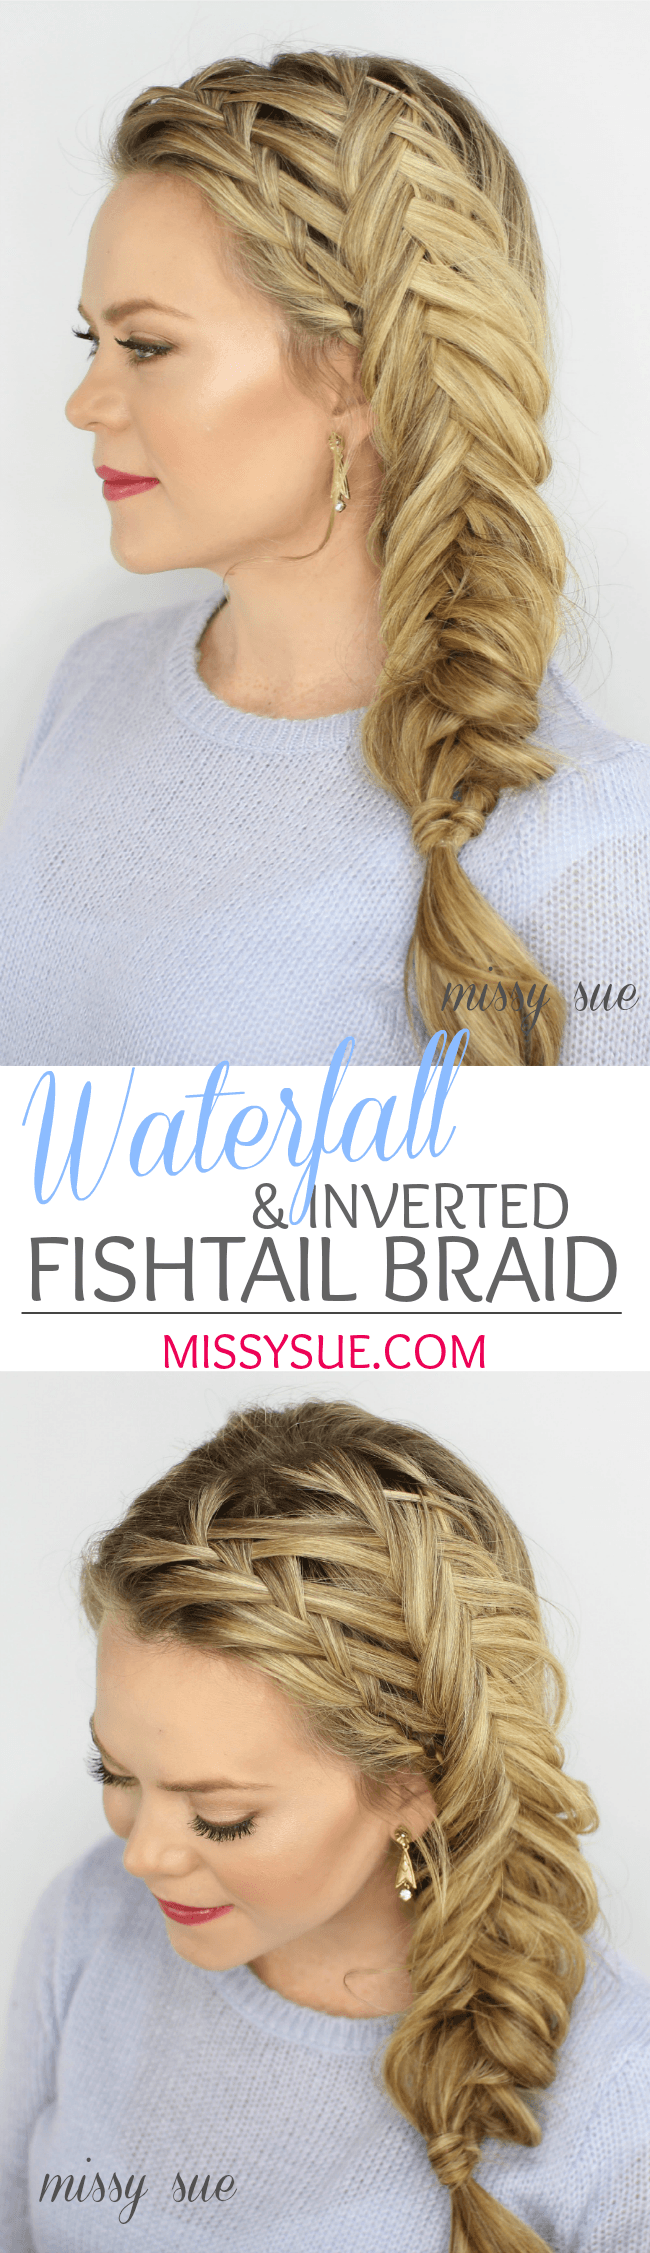 Waterfall and Inverted Fishtail Braid